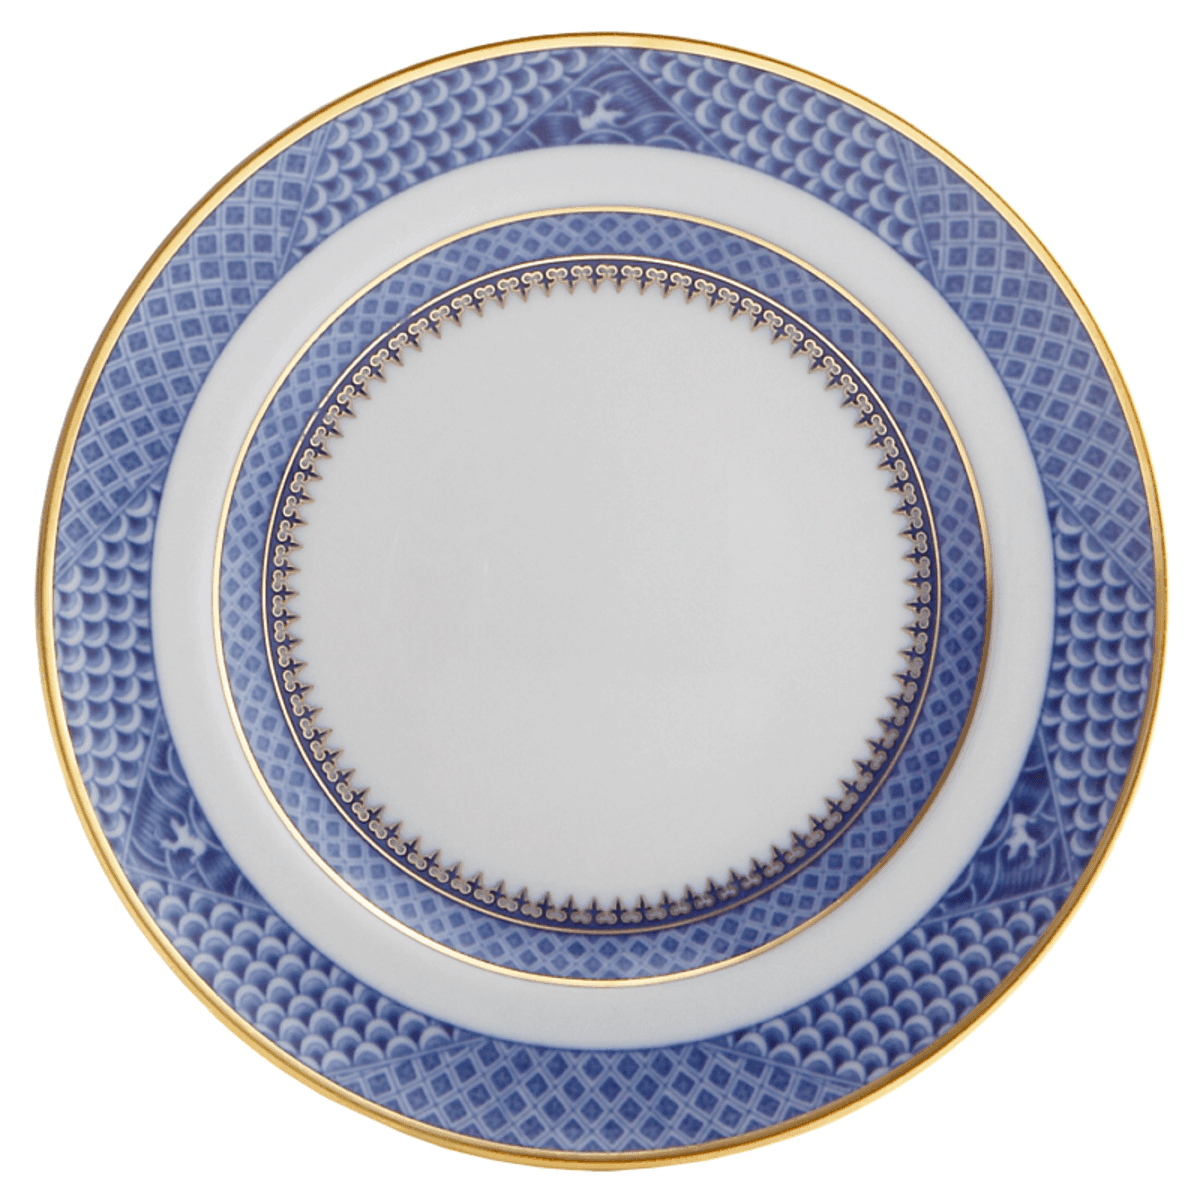 Indigo Wave Bread Plate